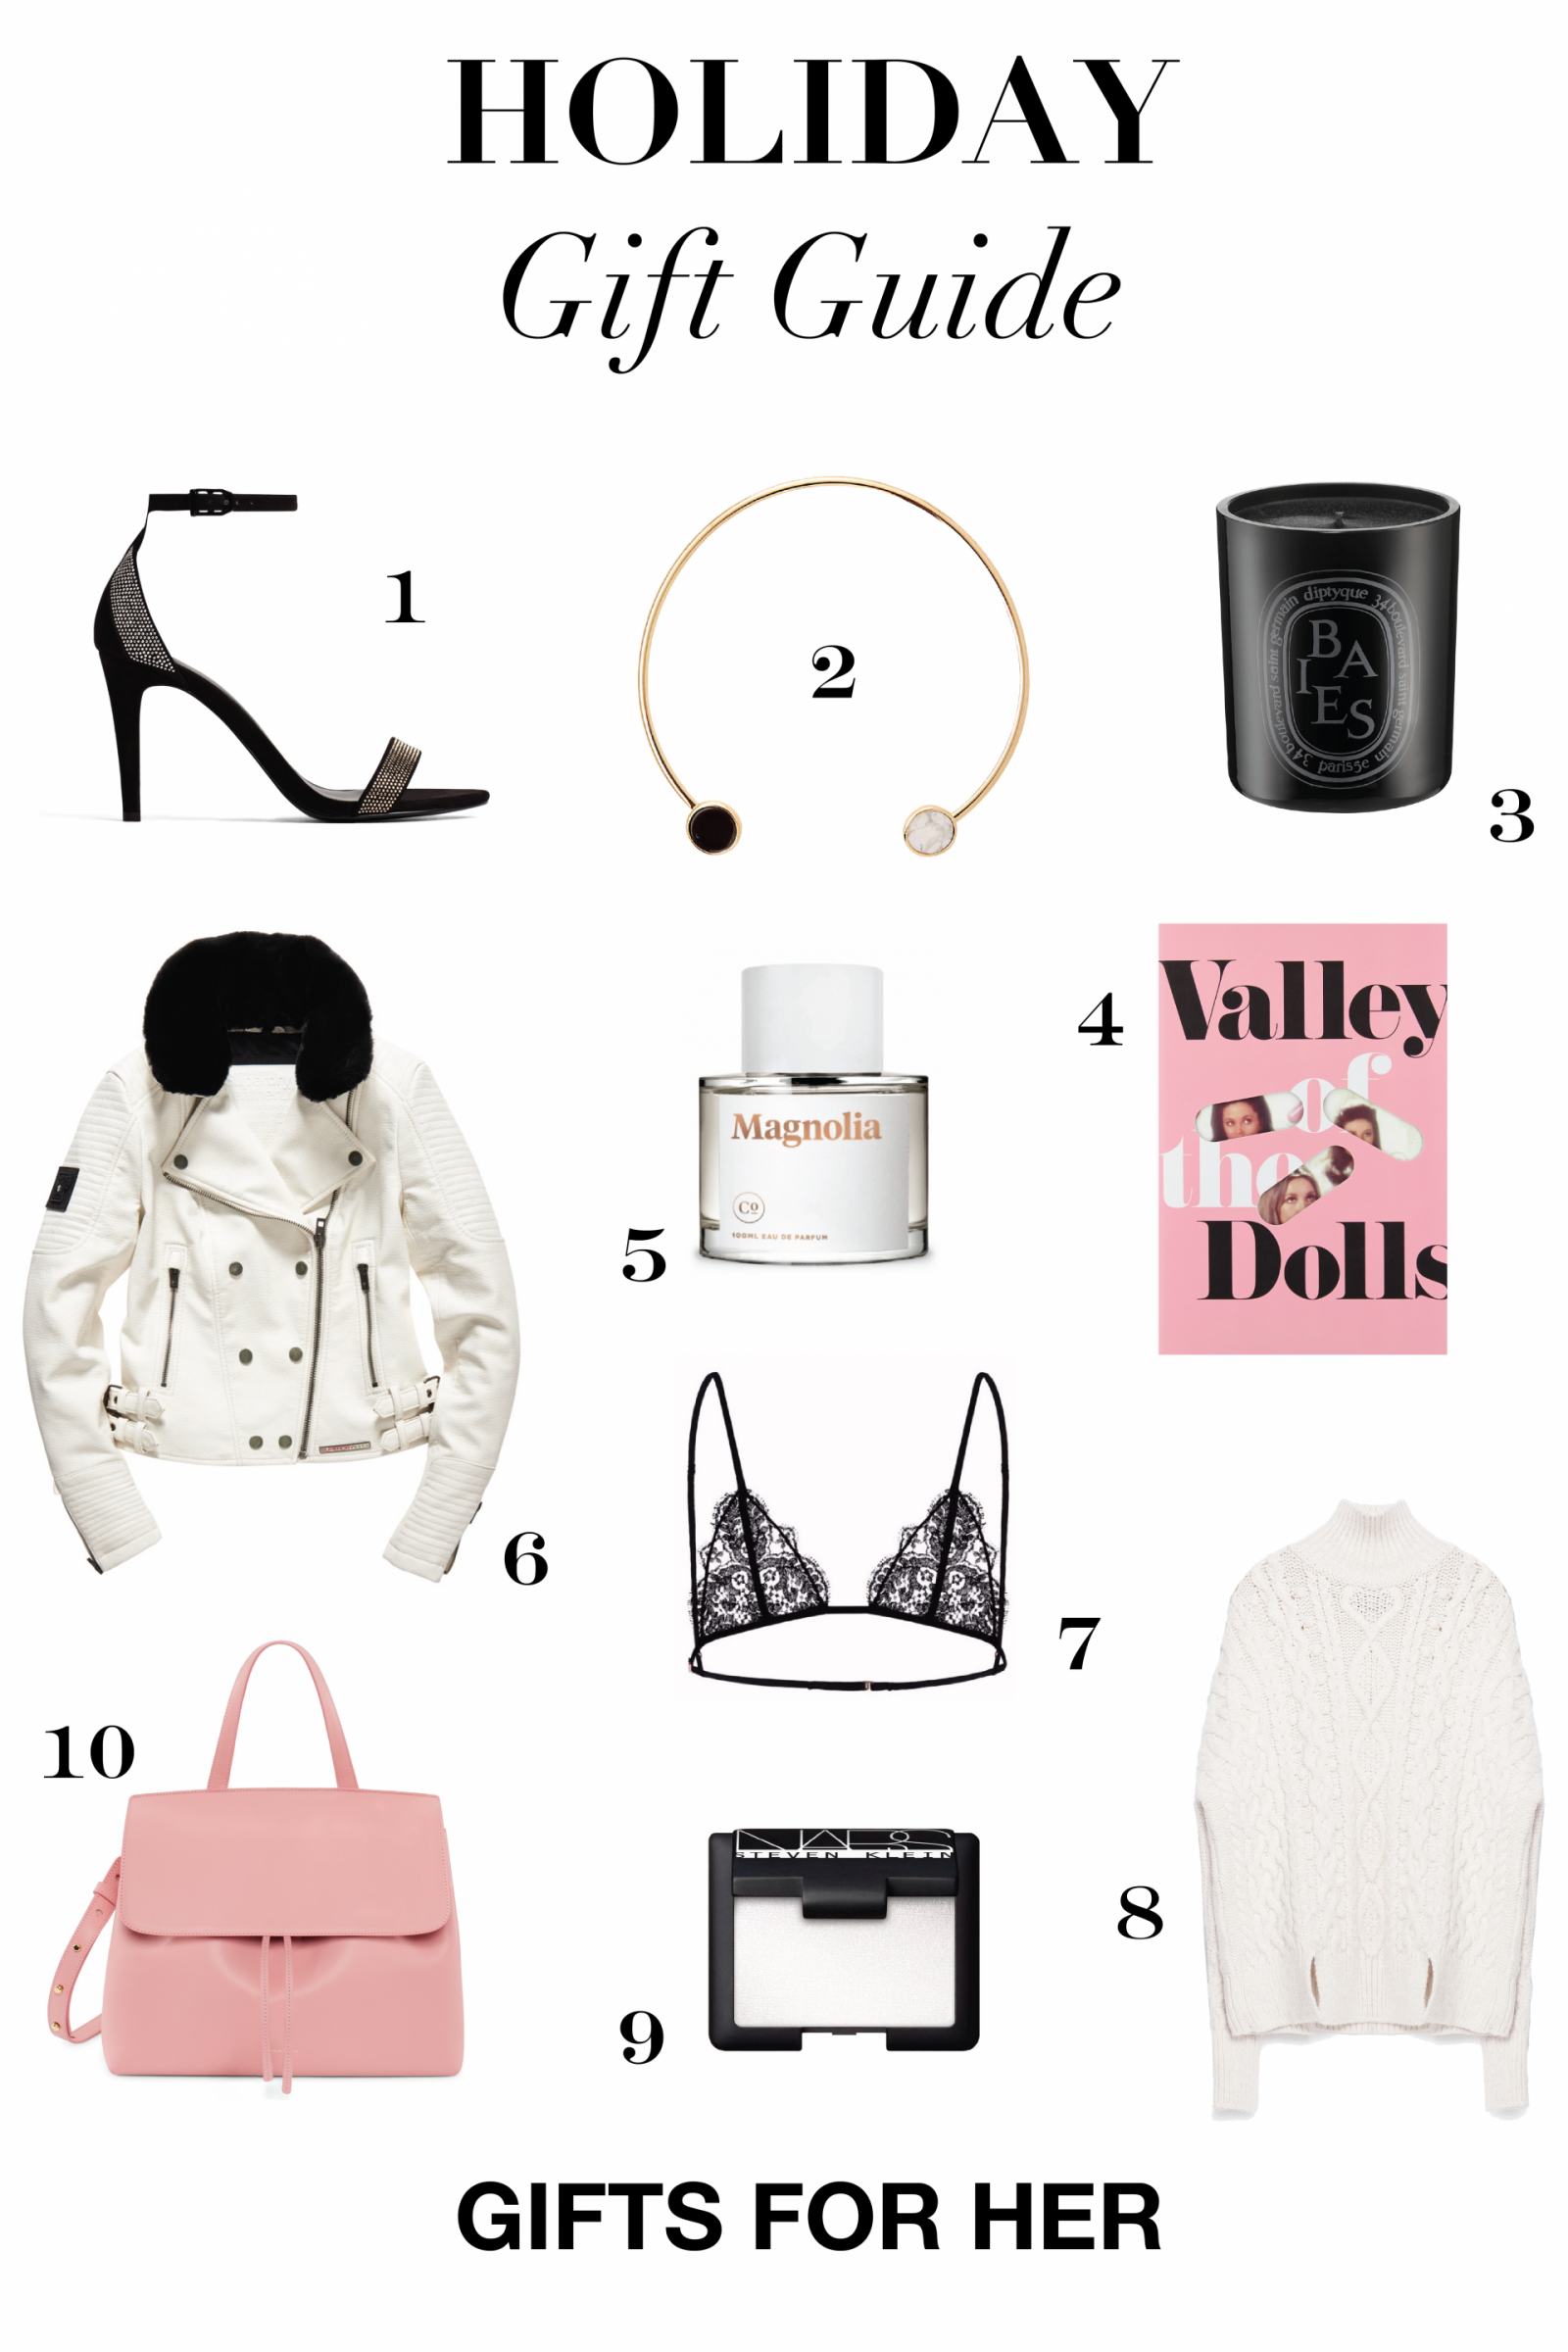 10 Gifts For Her